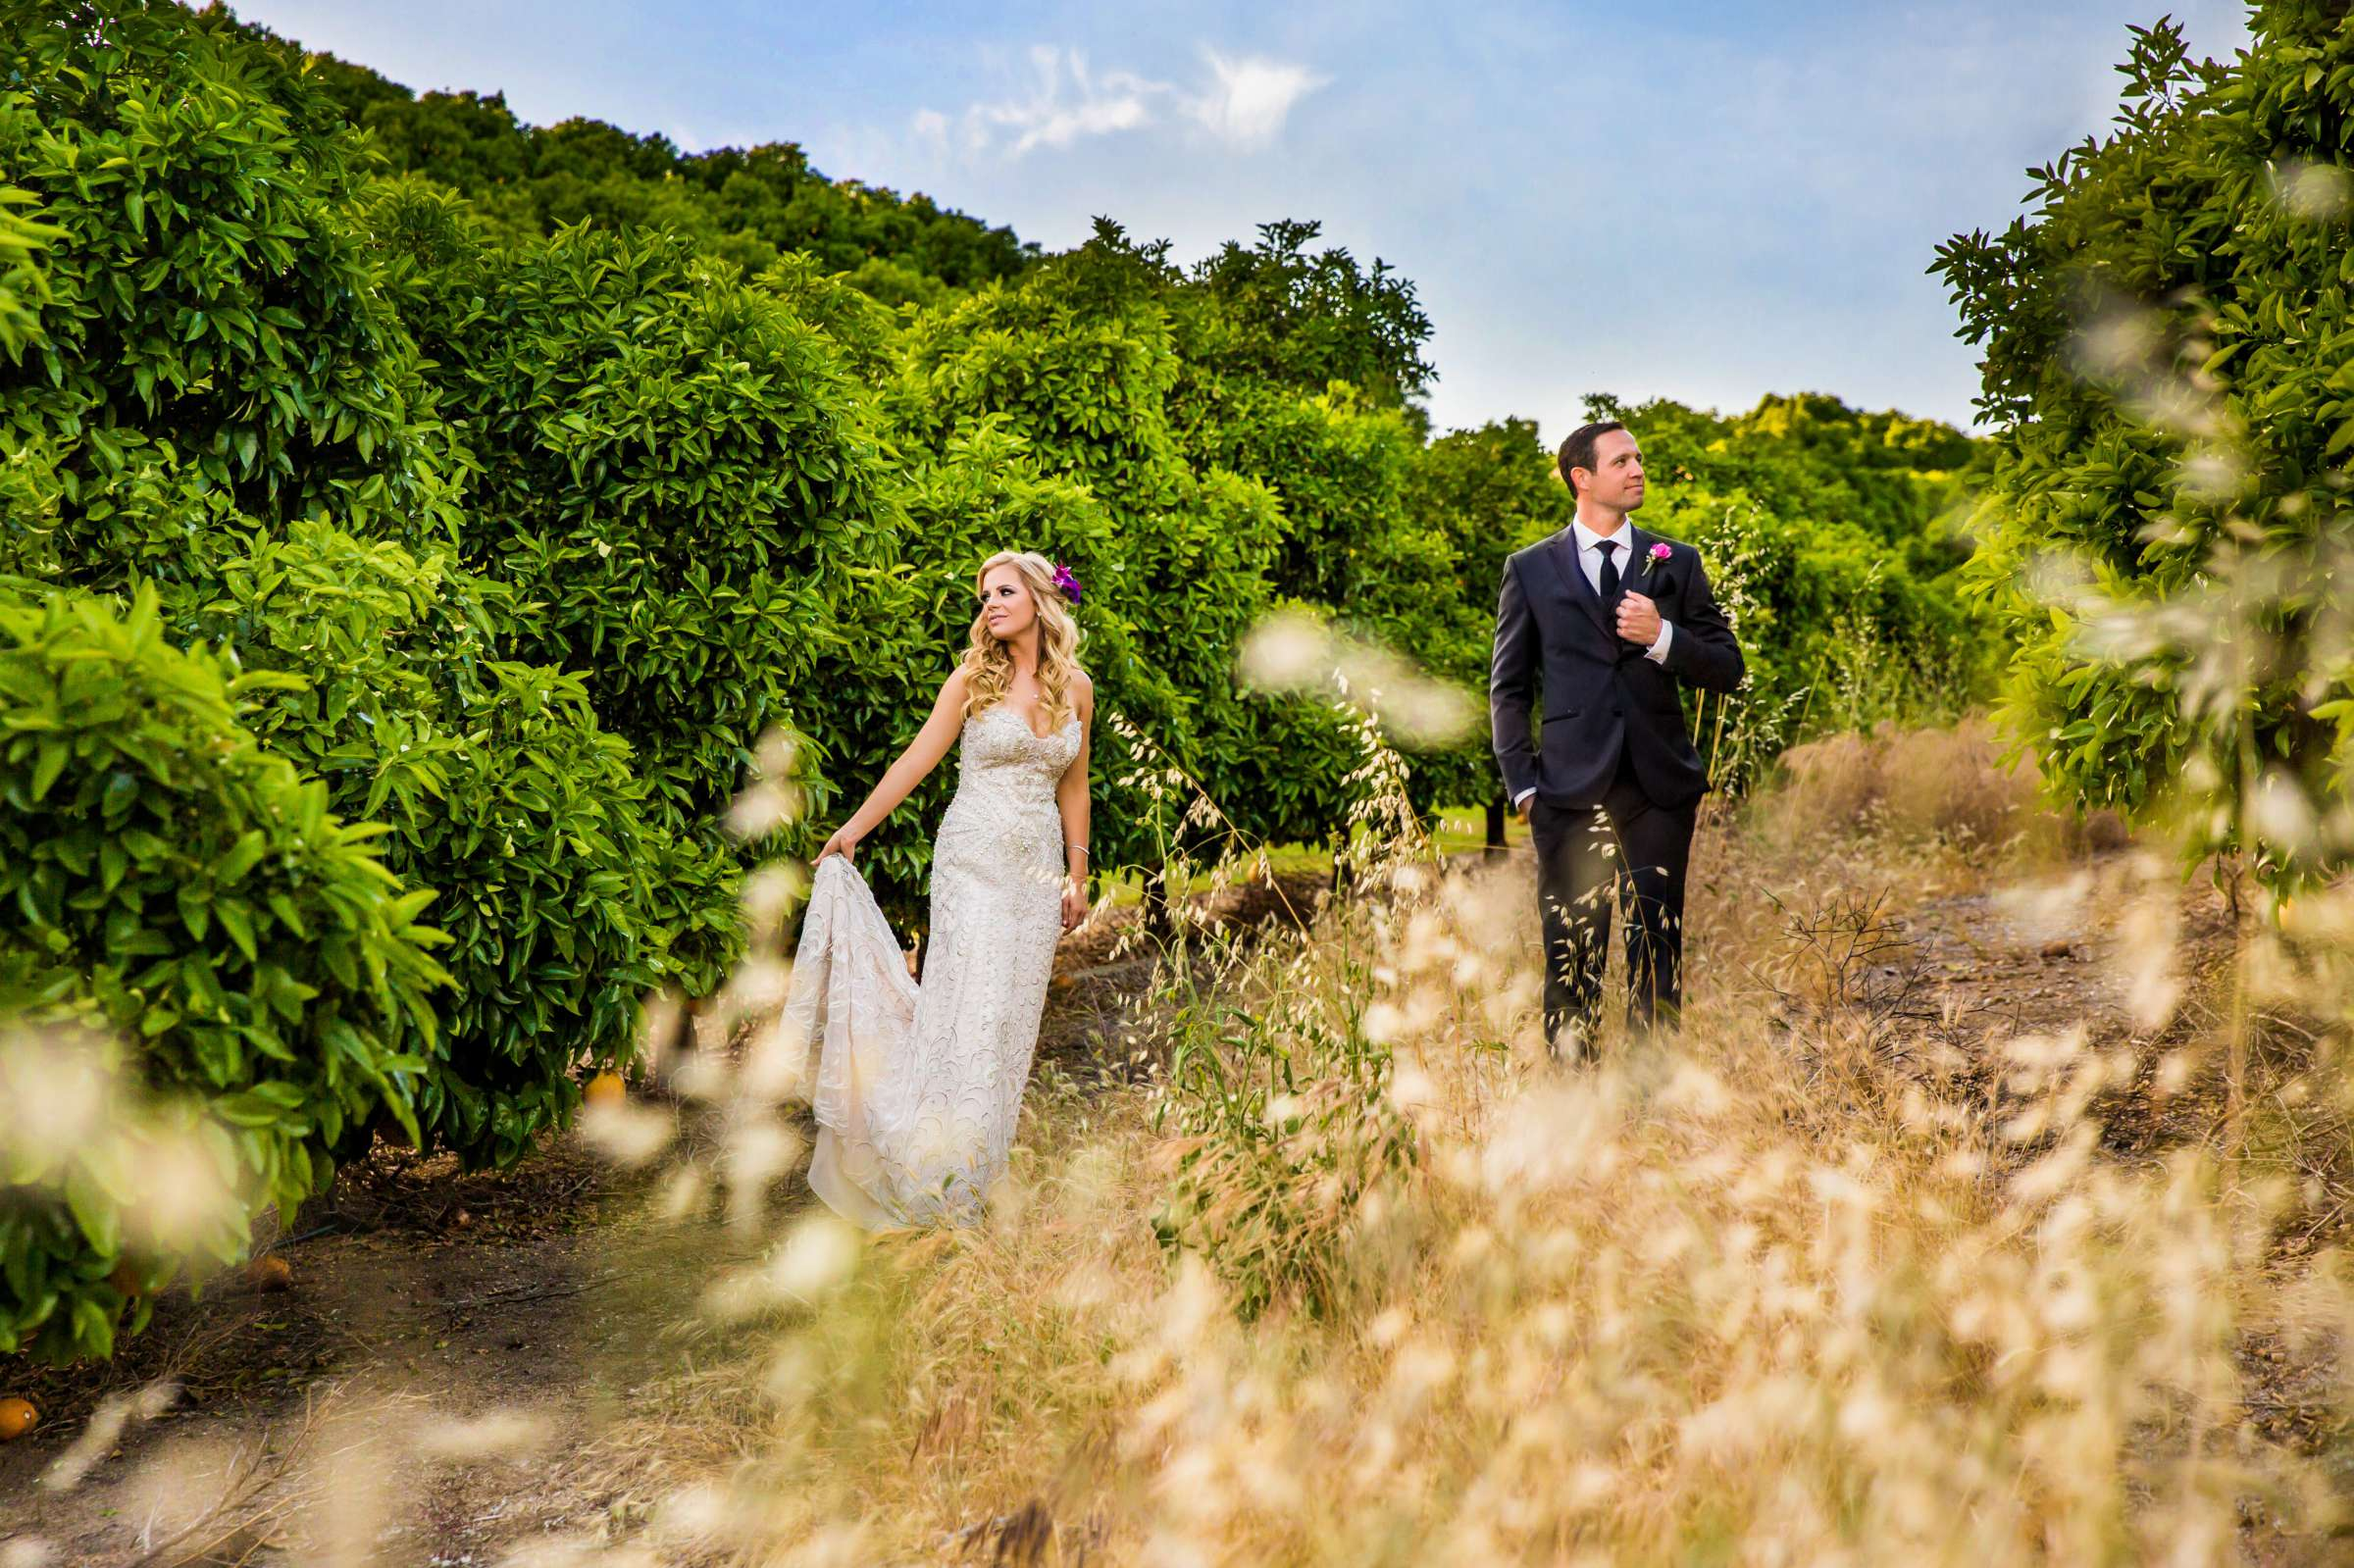 Photographers Favorite at Masia de la Vinya Wedding coordinated by Michelle Garibay Events, Brenna and Tim Wedding Photo #352521 by True Photography